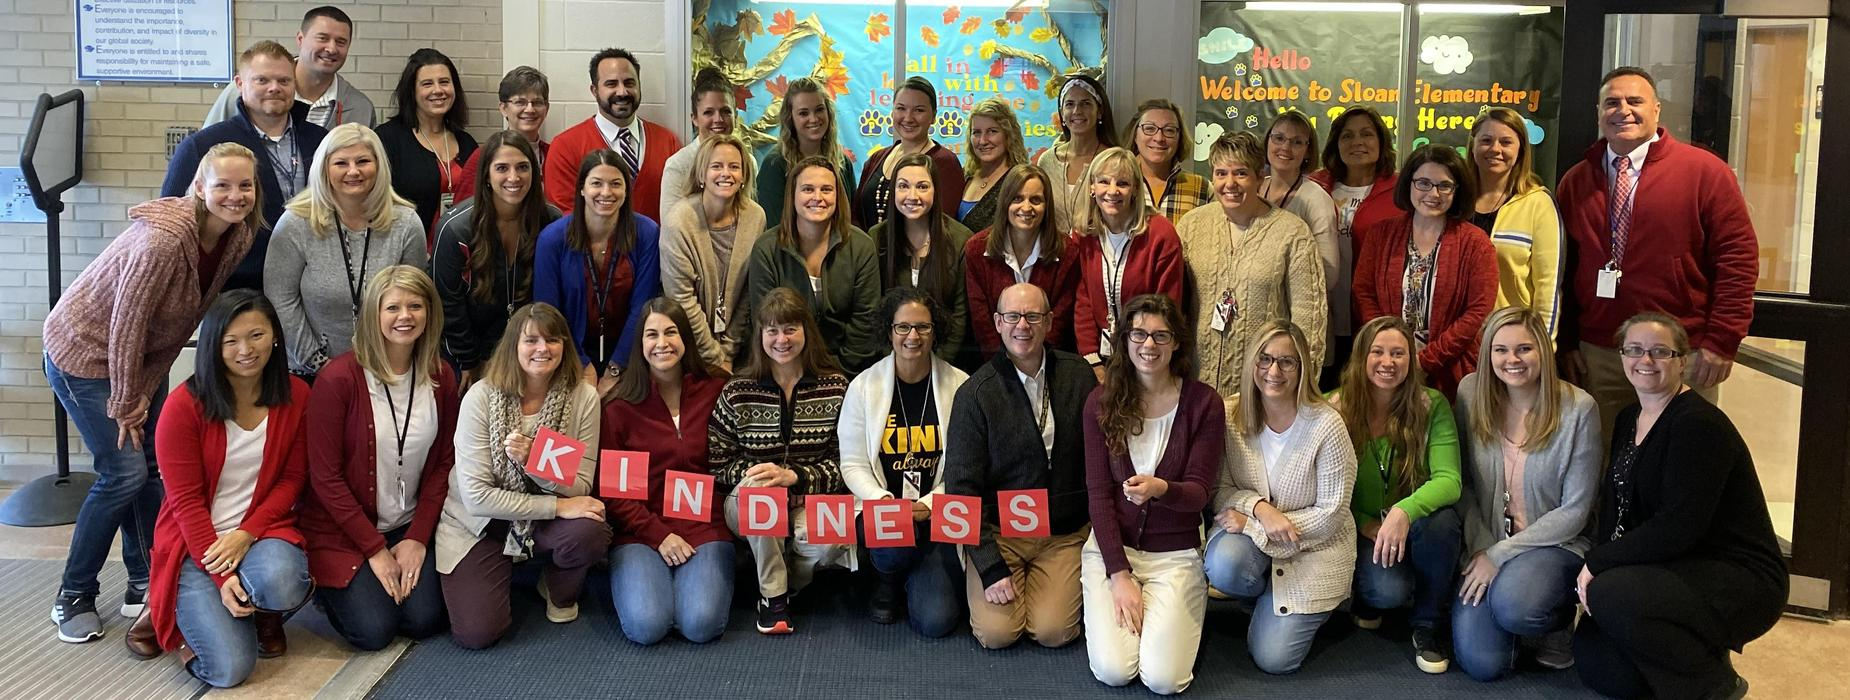 Sloan Elementary School teachers and FR administrators celebrate World Kindness Day by wearing their best Mister Rogers sweaters and cardigans!